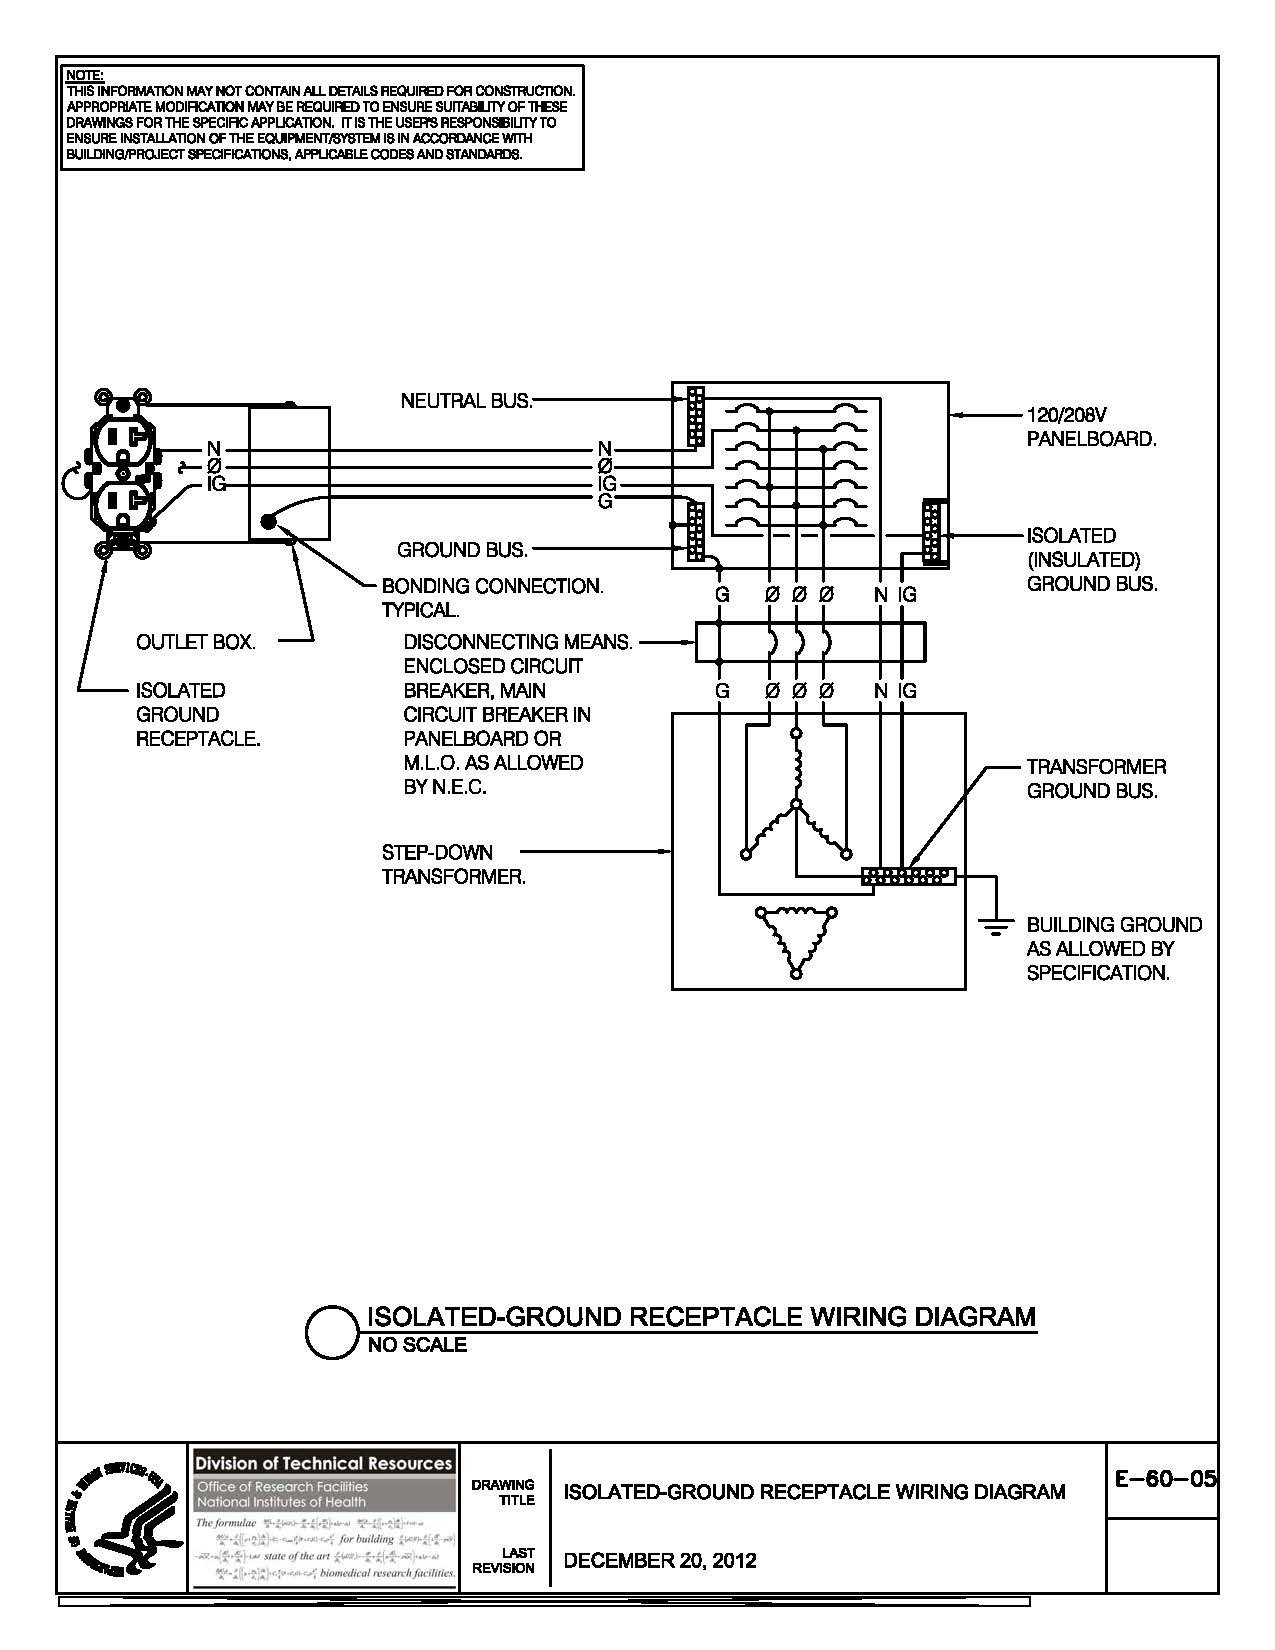 low voltage transformer wiring diagram Collection-Broan Doorbell Wiring Diagram Best Typical Doorbell Wiring Diagram Save Low Voltage Transformer Wiring 15-i